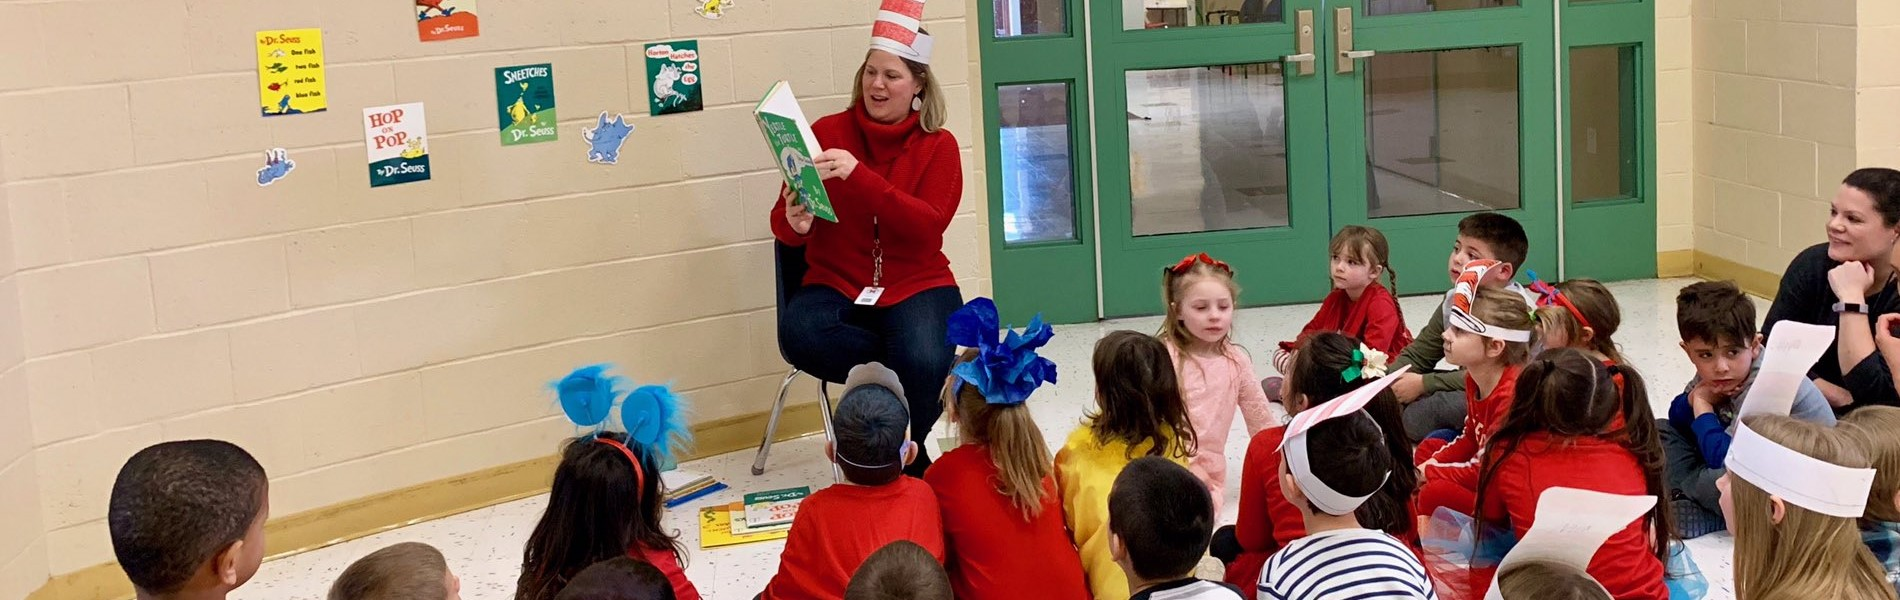 Dr. Seuss storytime